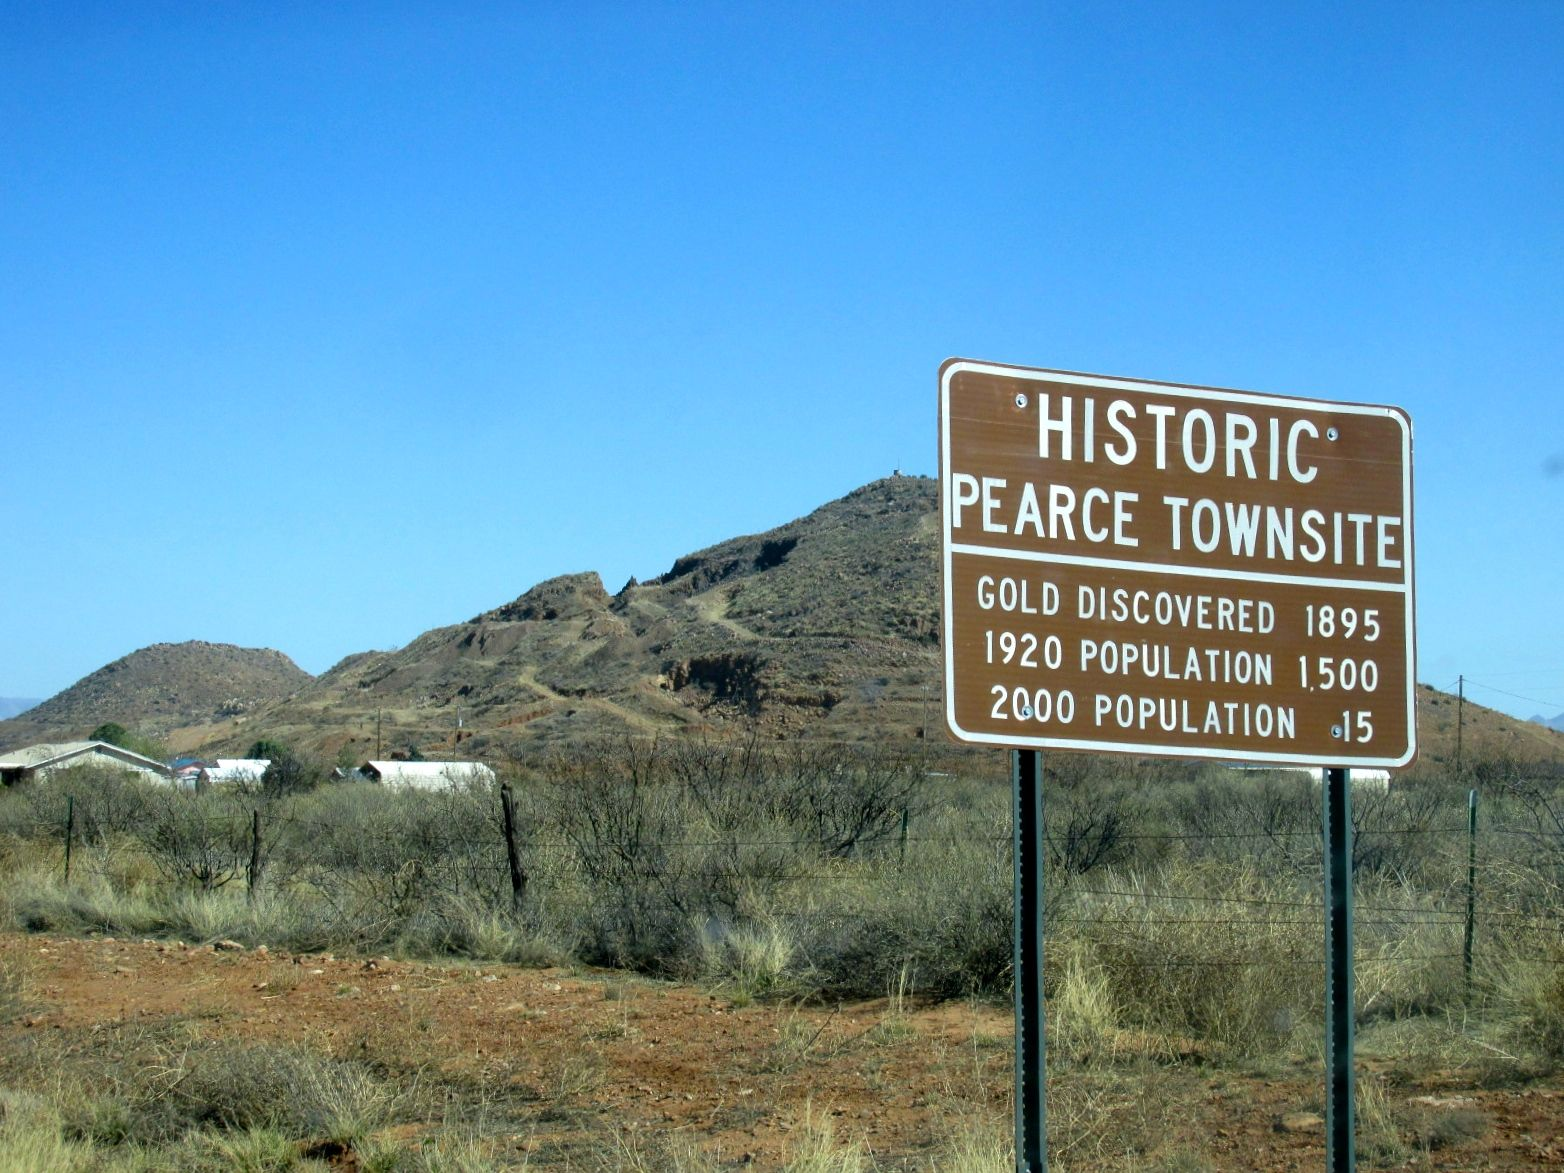 HIstoric Pearce Townsite sign